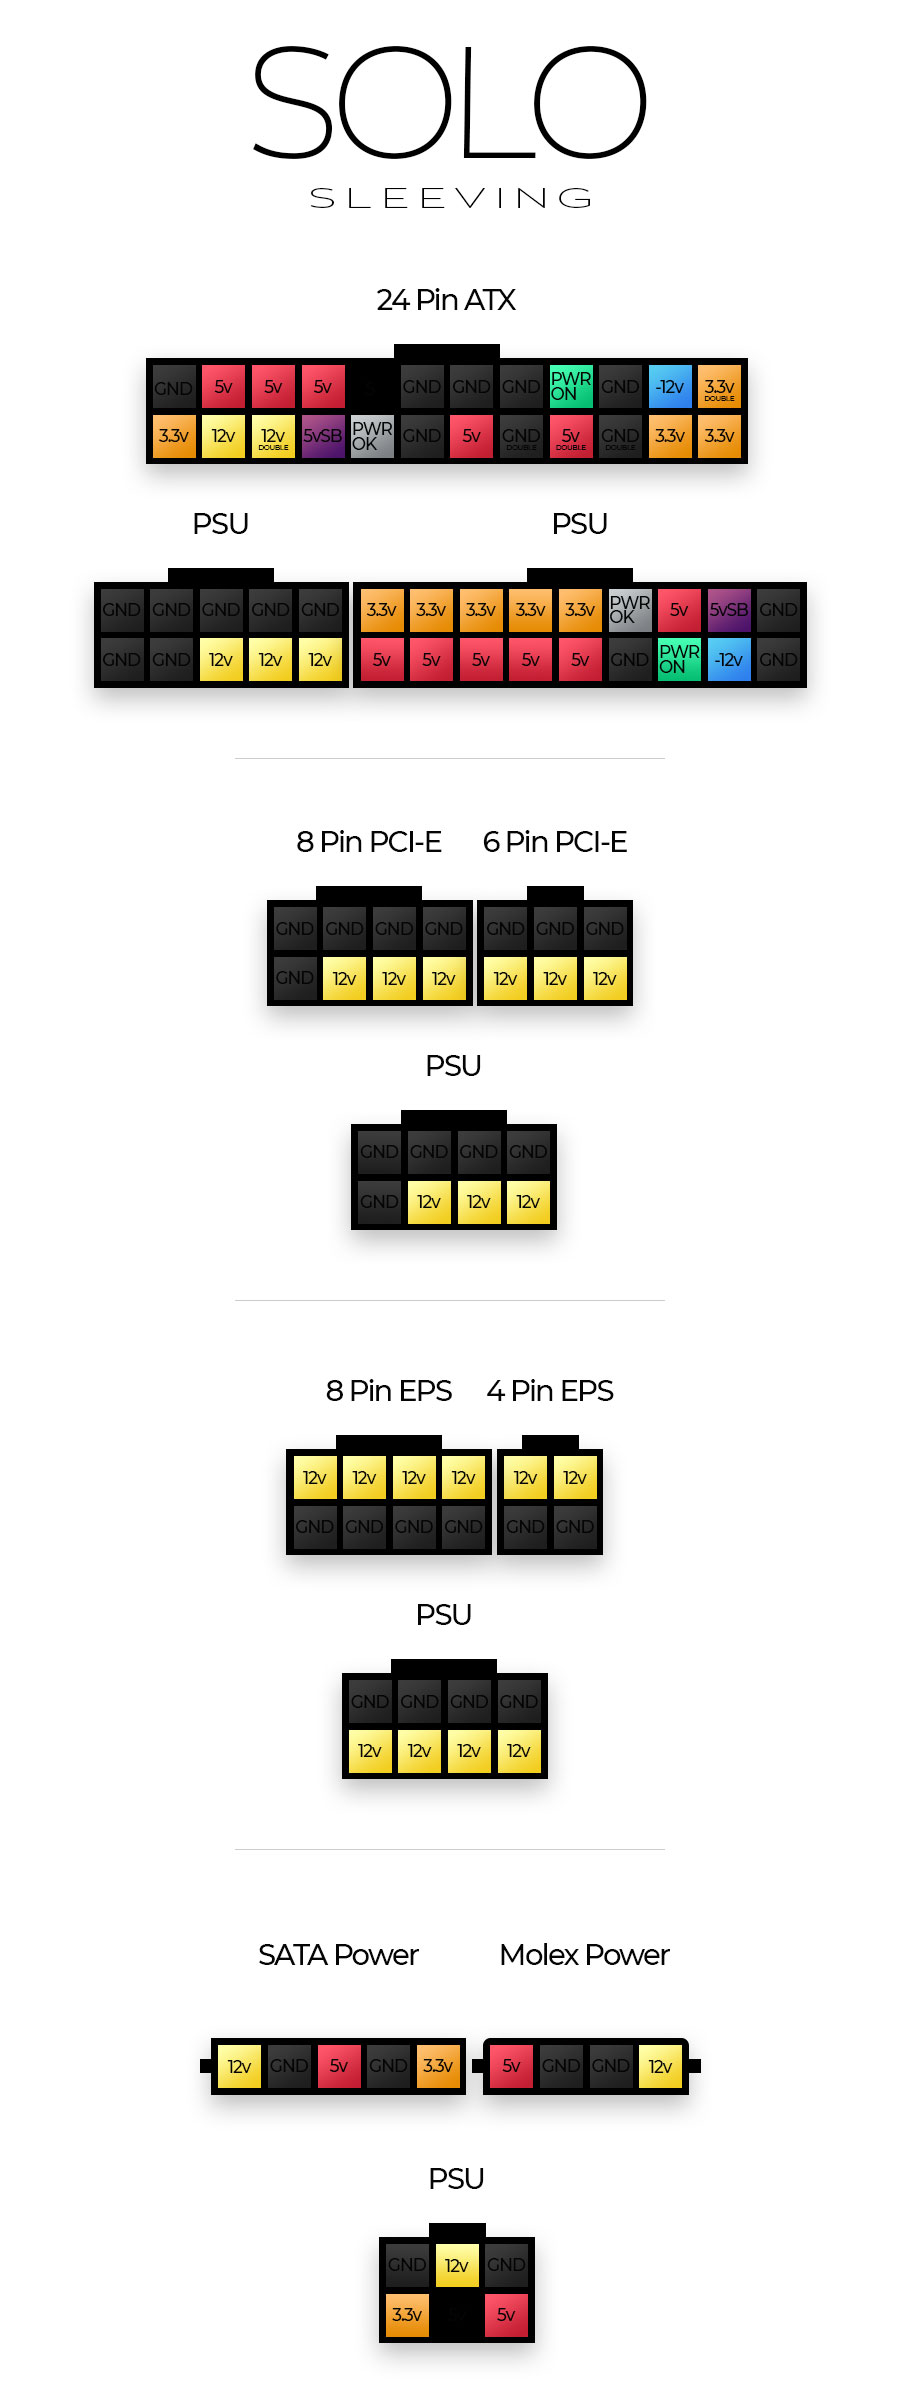 PSU Cable Compatibility & Pinouts | SoloSleeving | Gx 24 4 Pin Adapter Wiring Diagram |  | SoloSleeving